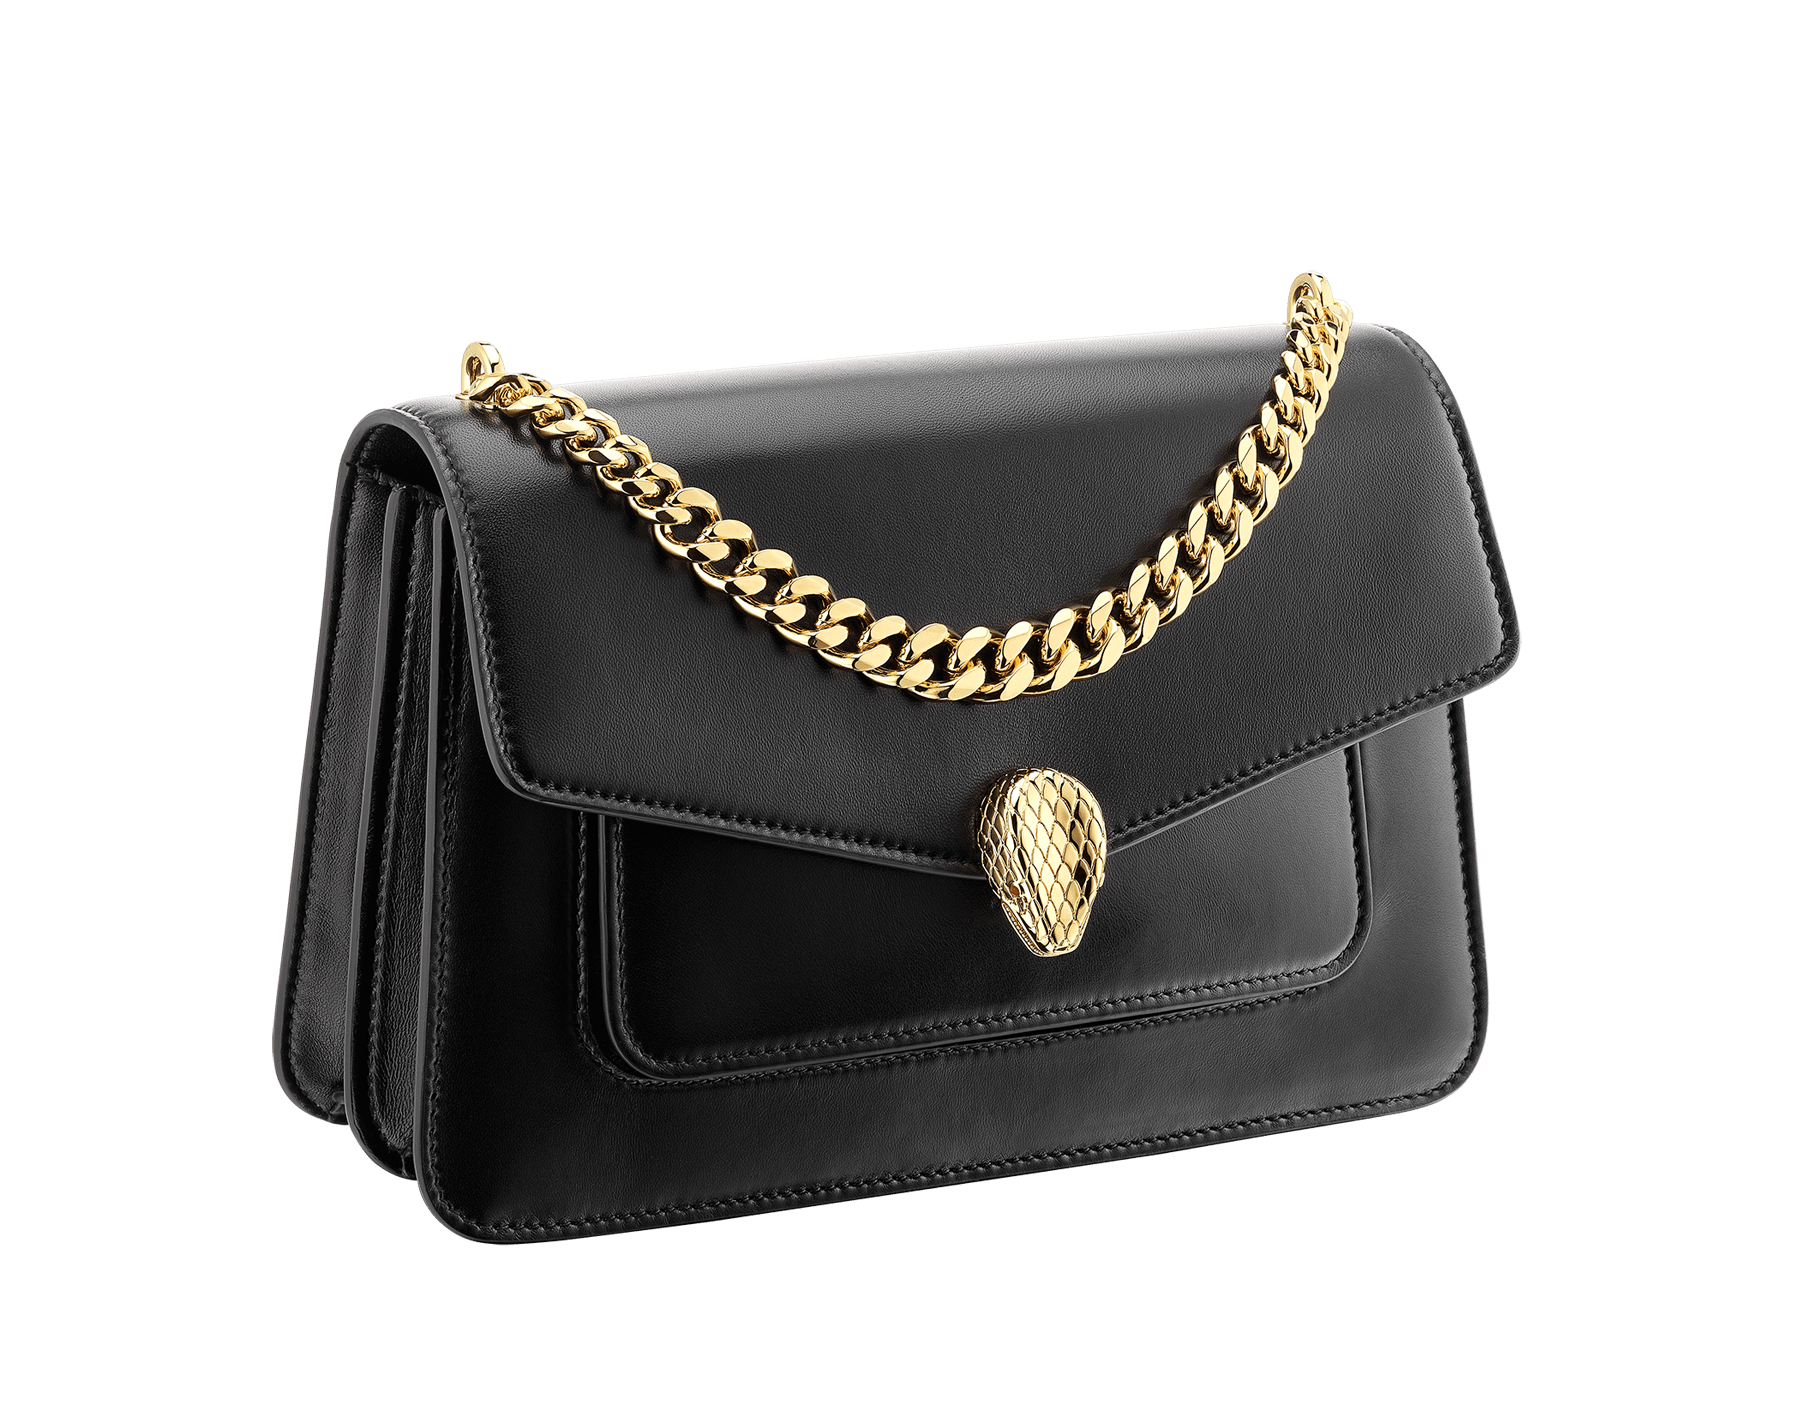 """""""Serpenti Forever"""" maxi chain crossbody bag in black nappa leather, with black nappa leather internal lining. New Serpenti head closure in gold-plated brass, finished with red enamel eyes. 290945 image 2"""